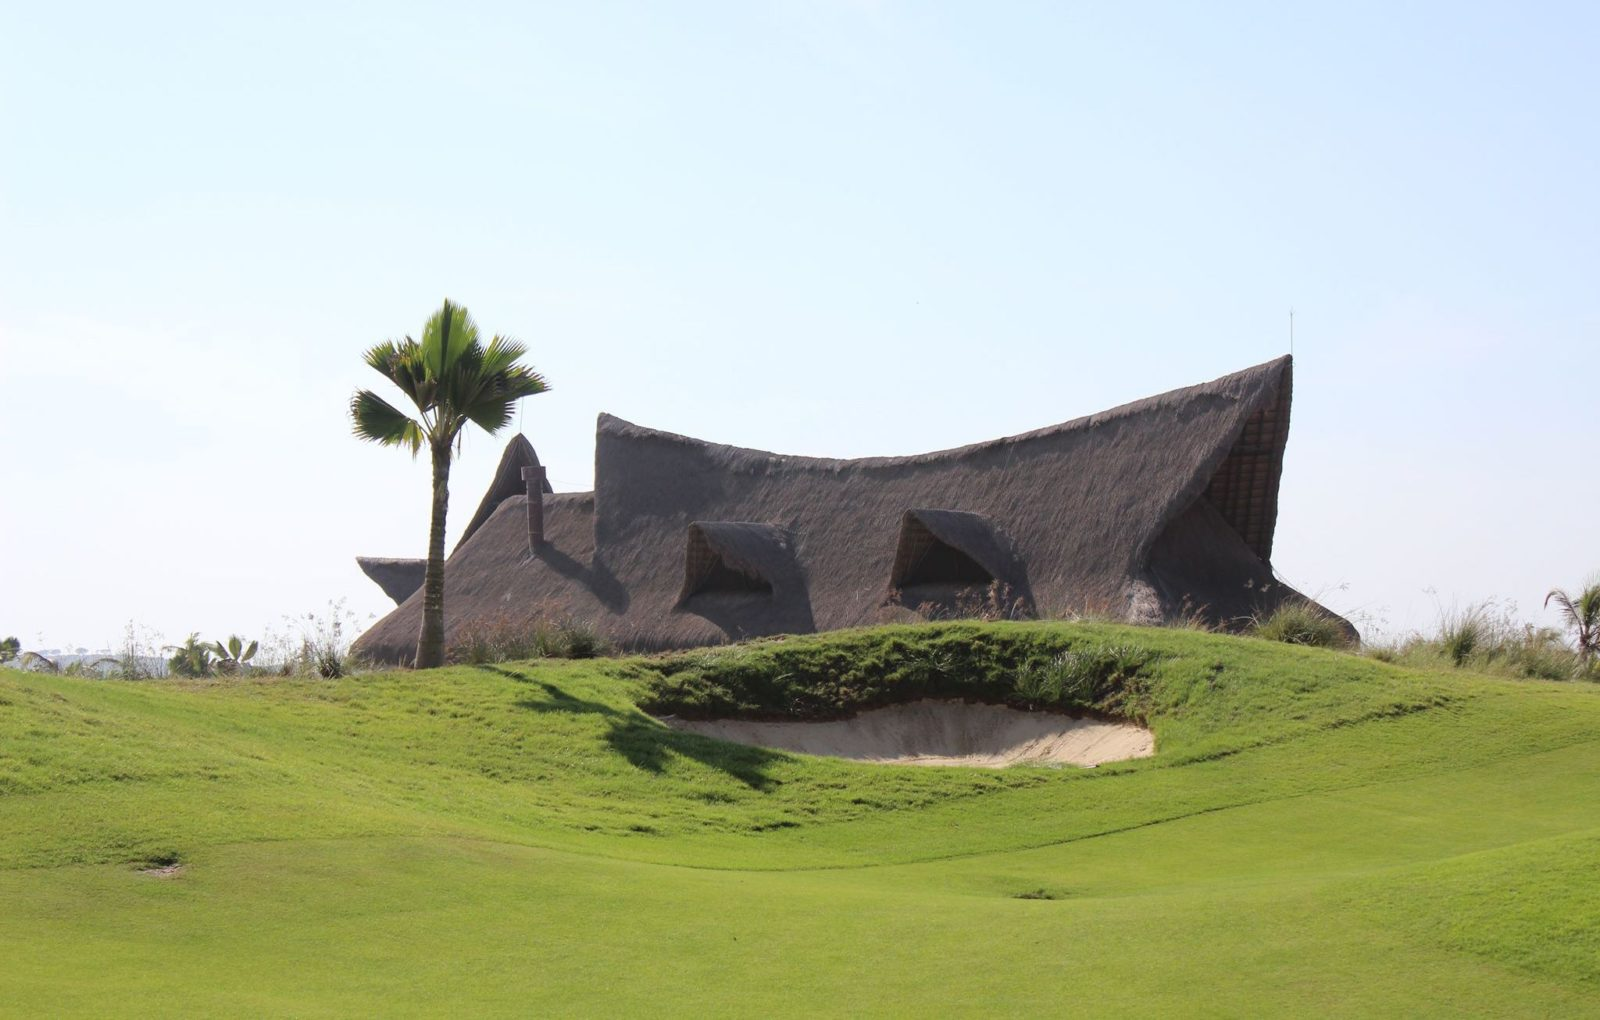 TPC Cartagena at Karibana